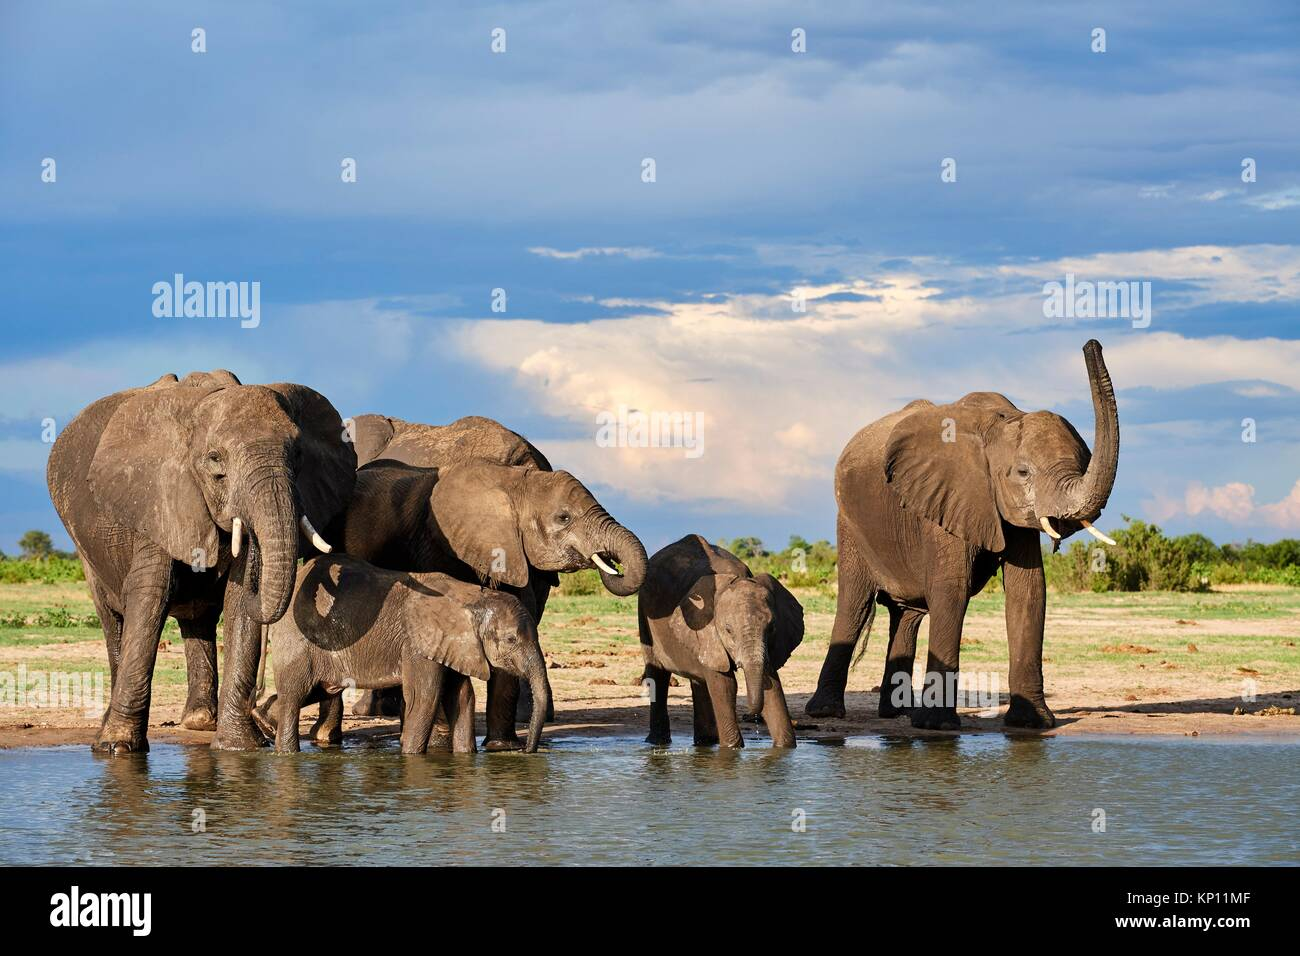 African elephant group (Loxodonta africana) drinking at a watehole. Hwange National Park, Zimbabwe. Stock Photo